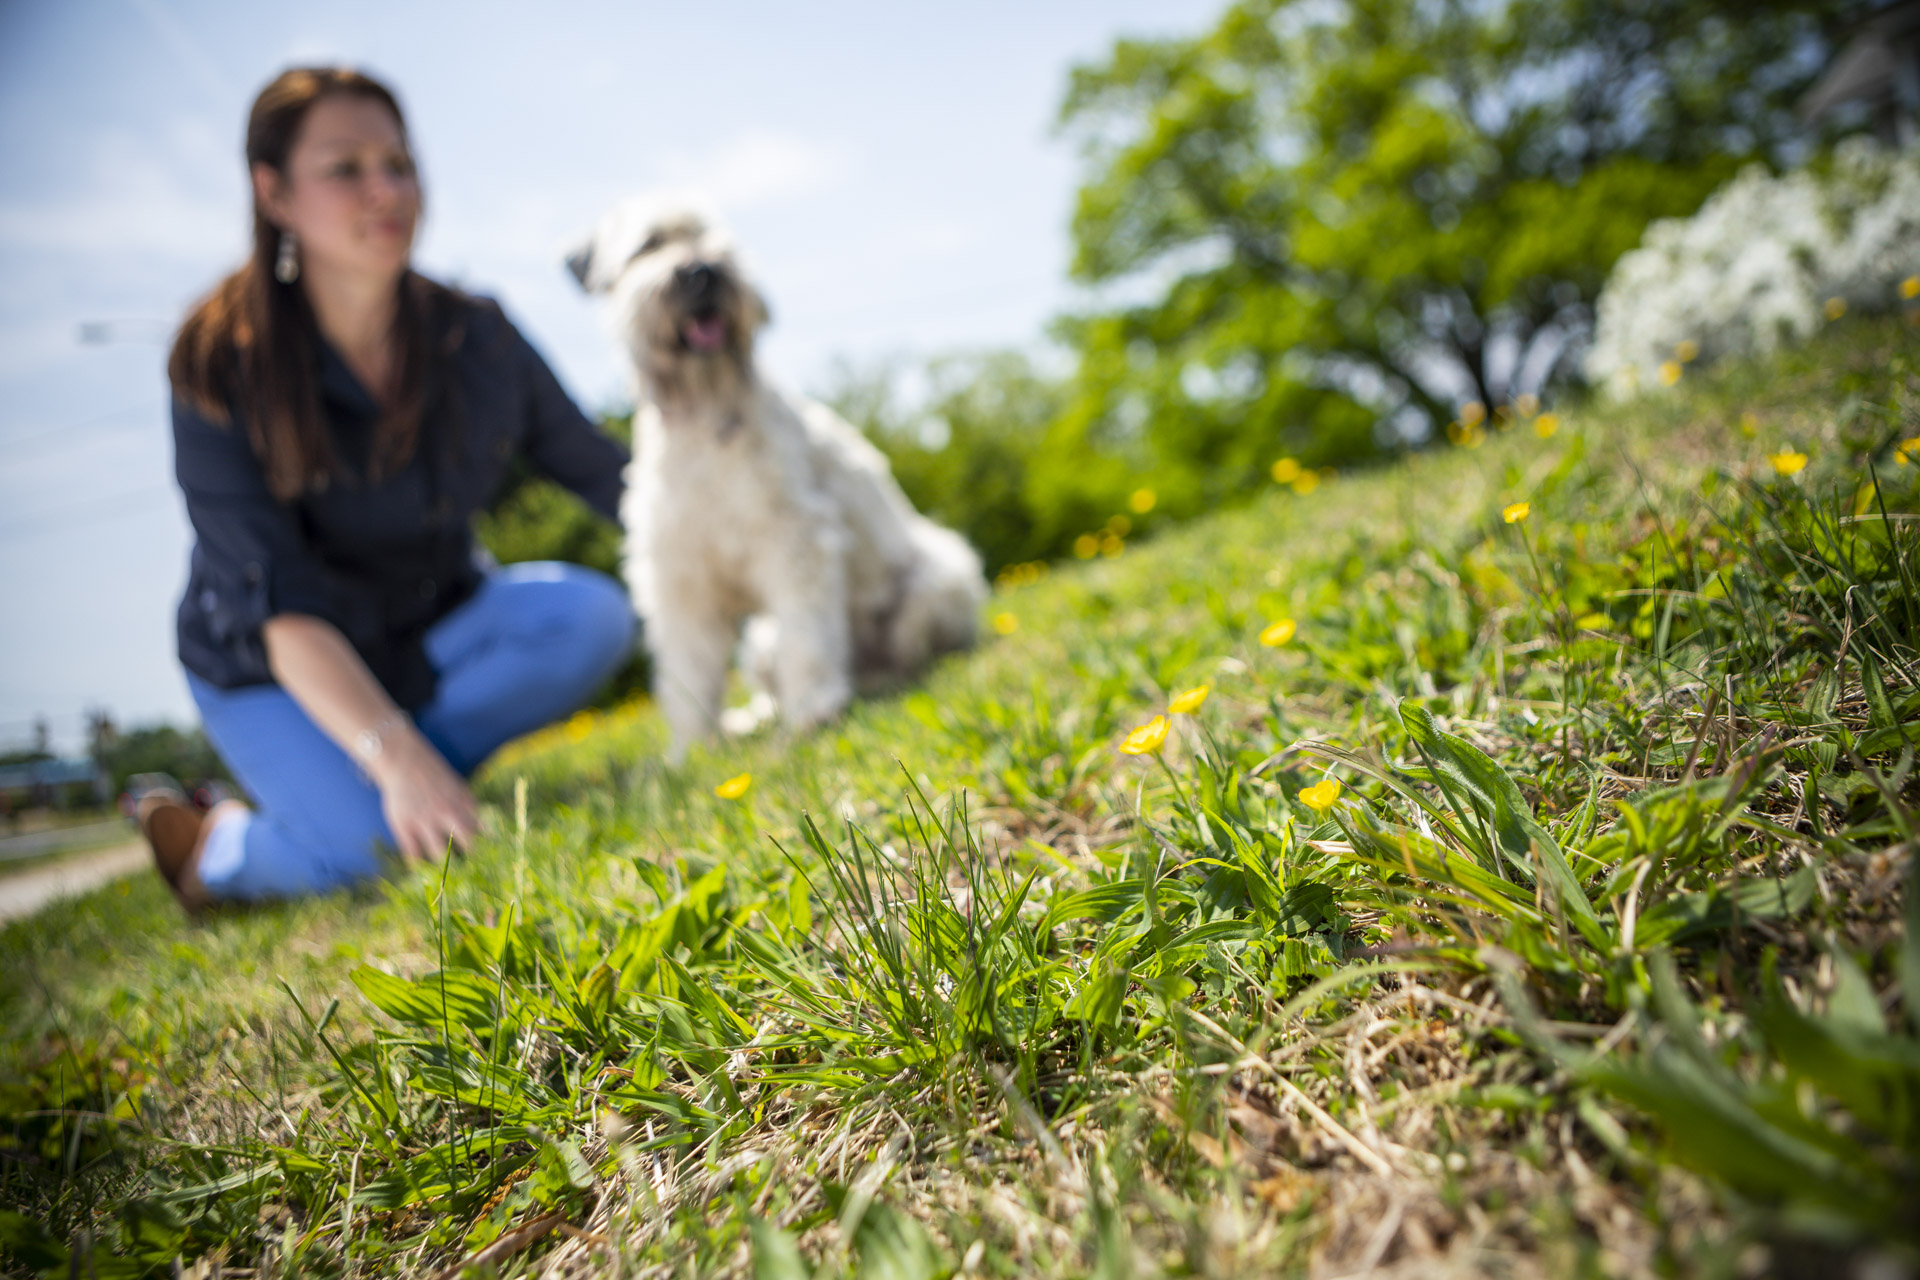 lawn-weeds-dog-customer-6